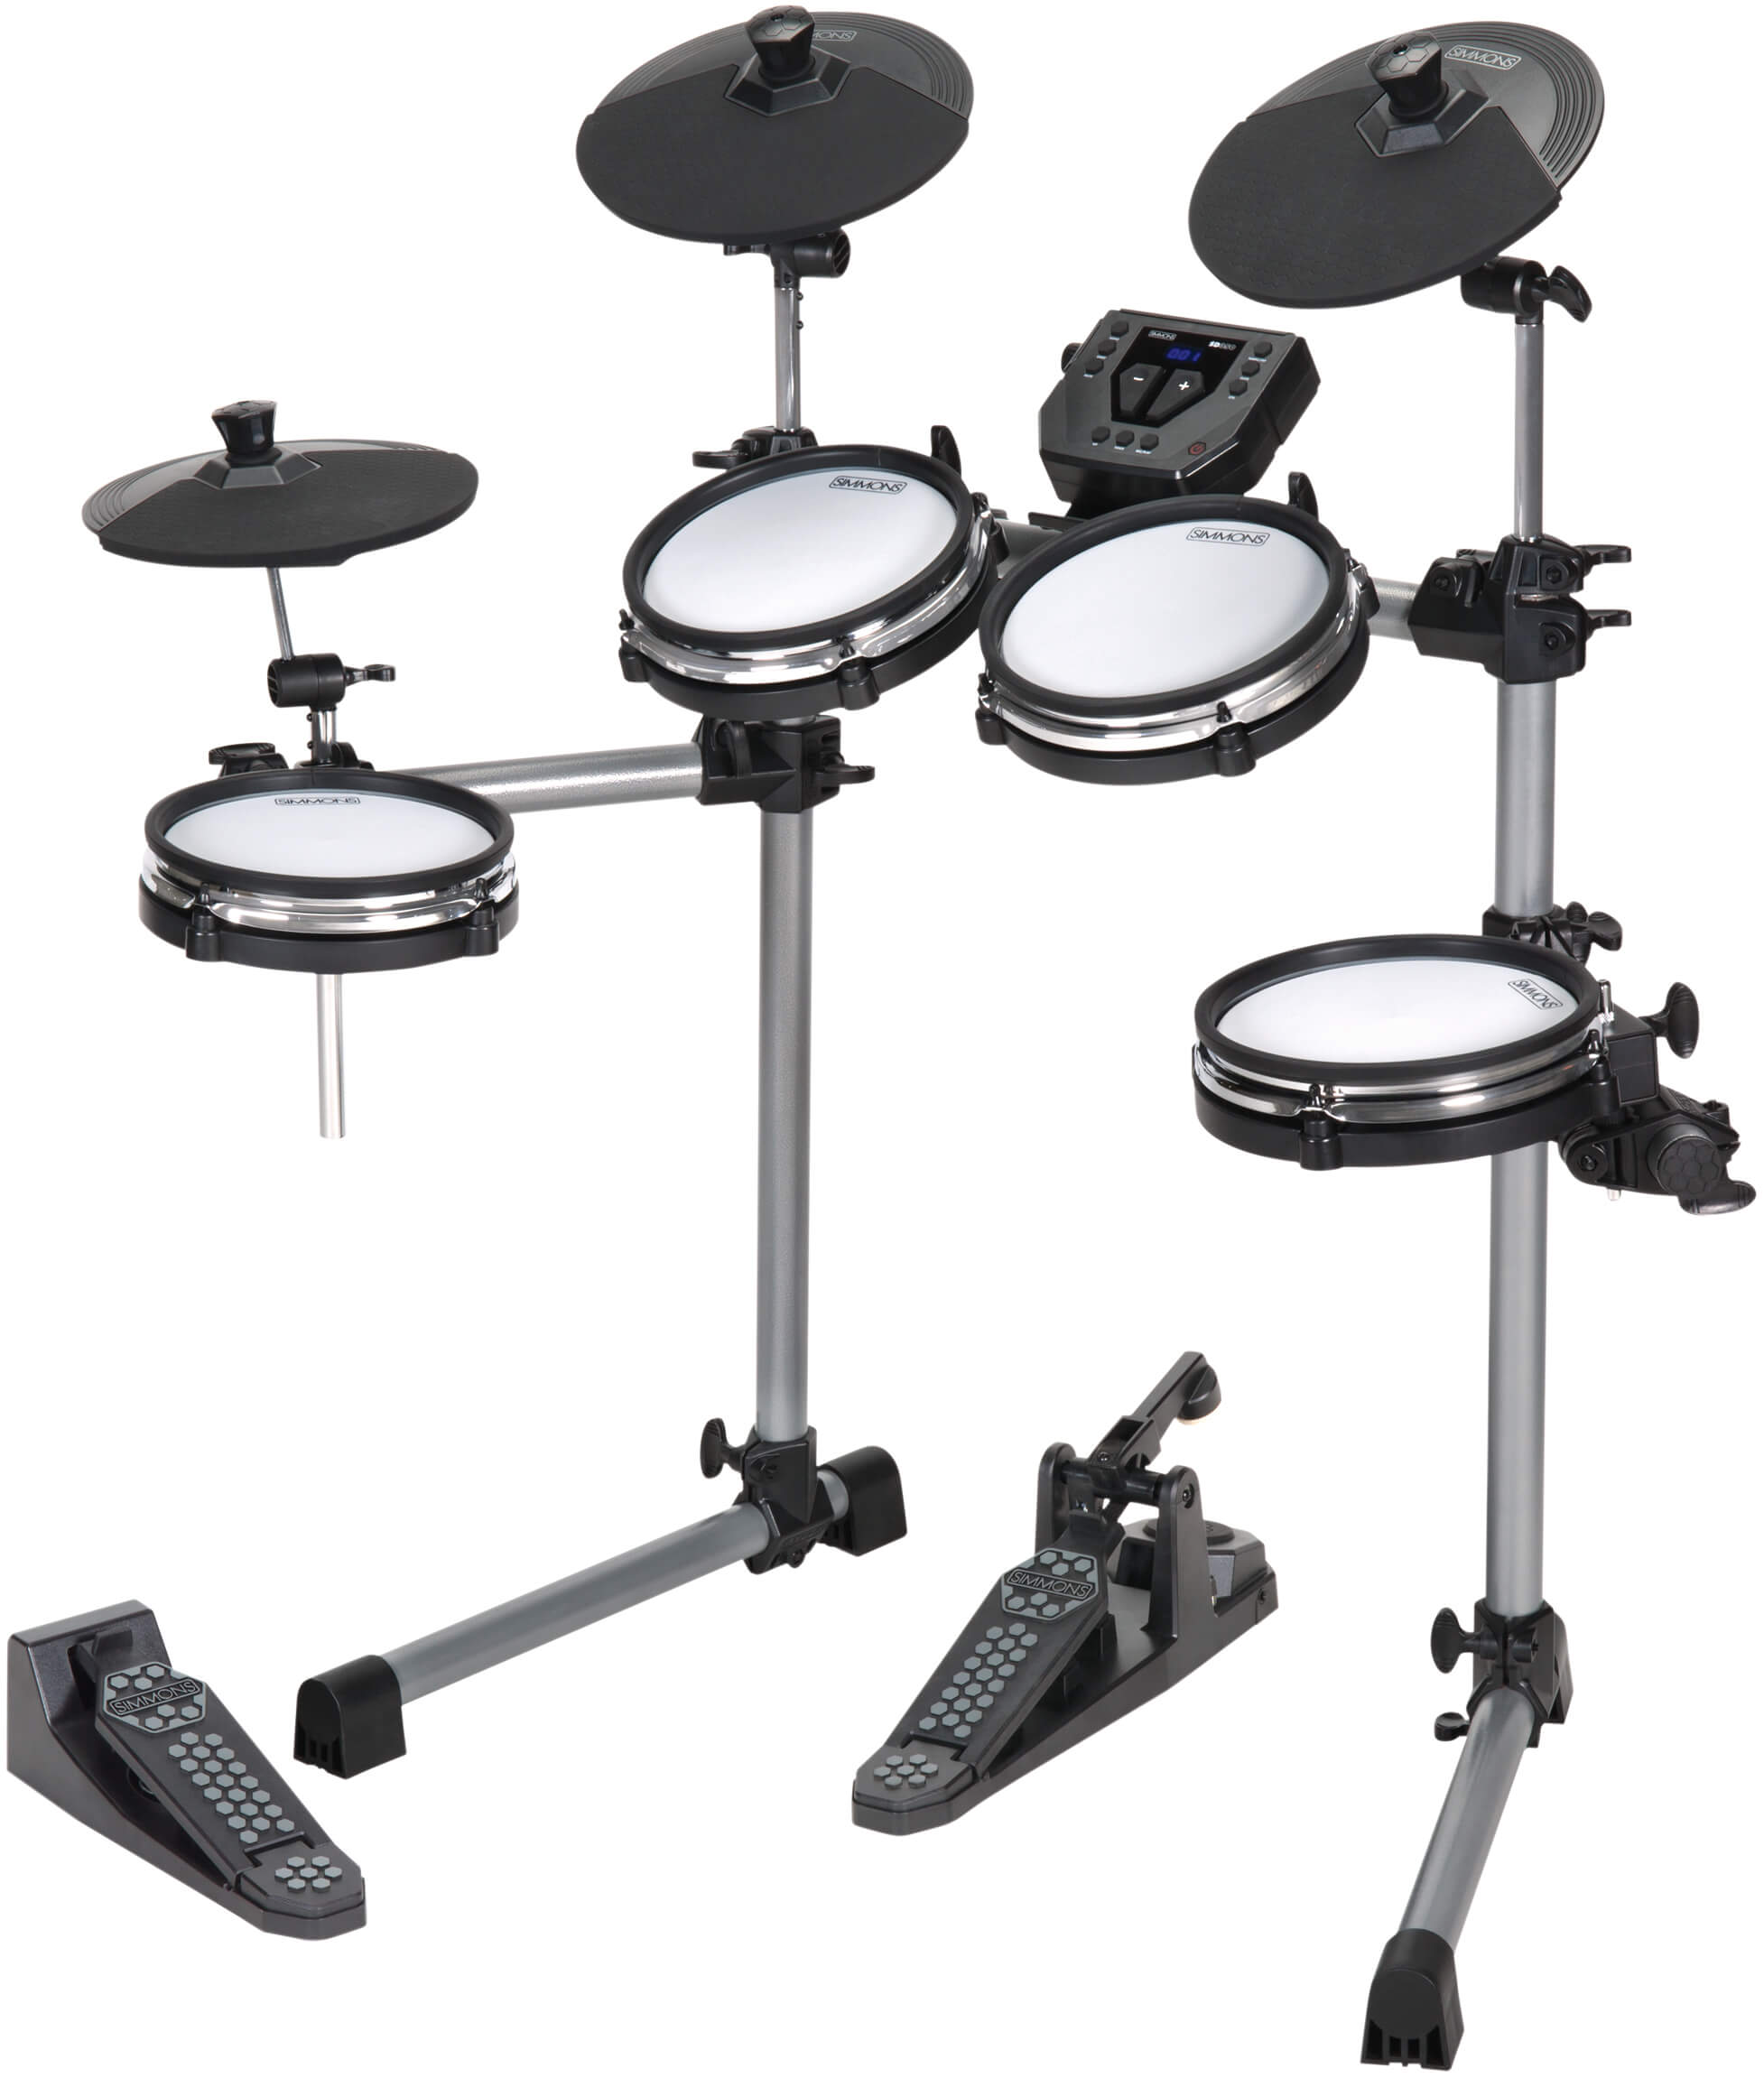 Simmons releases SD350 Mesh-Head Electronic Drum Kit